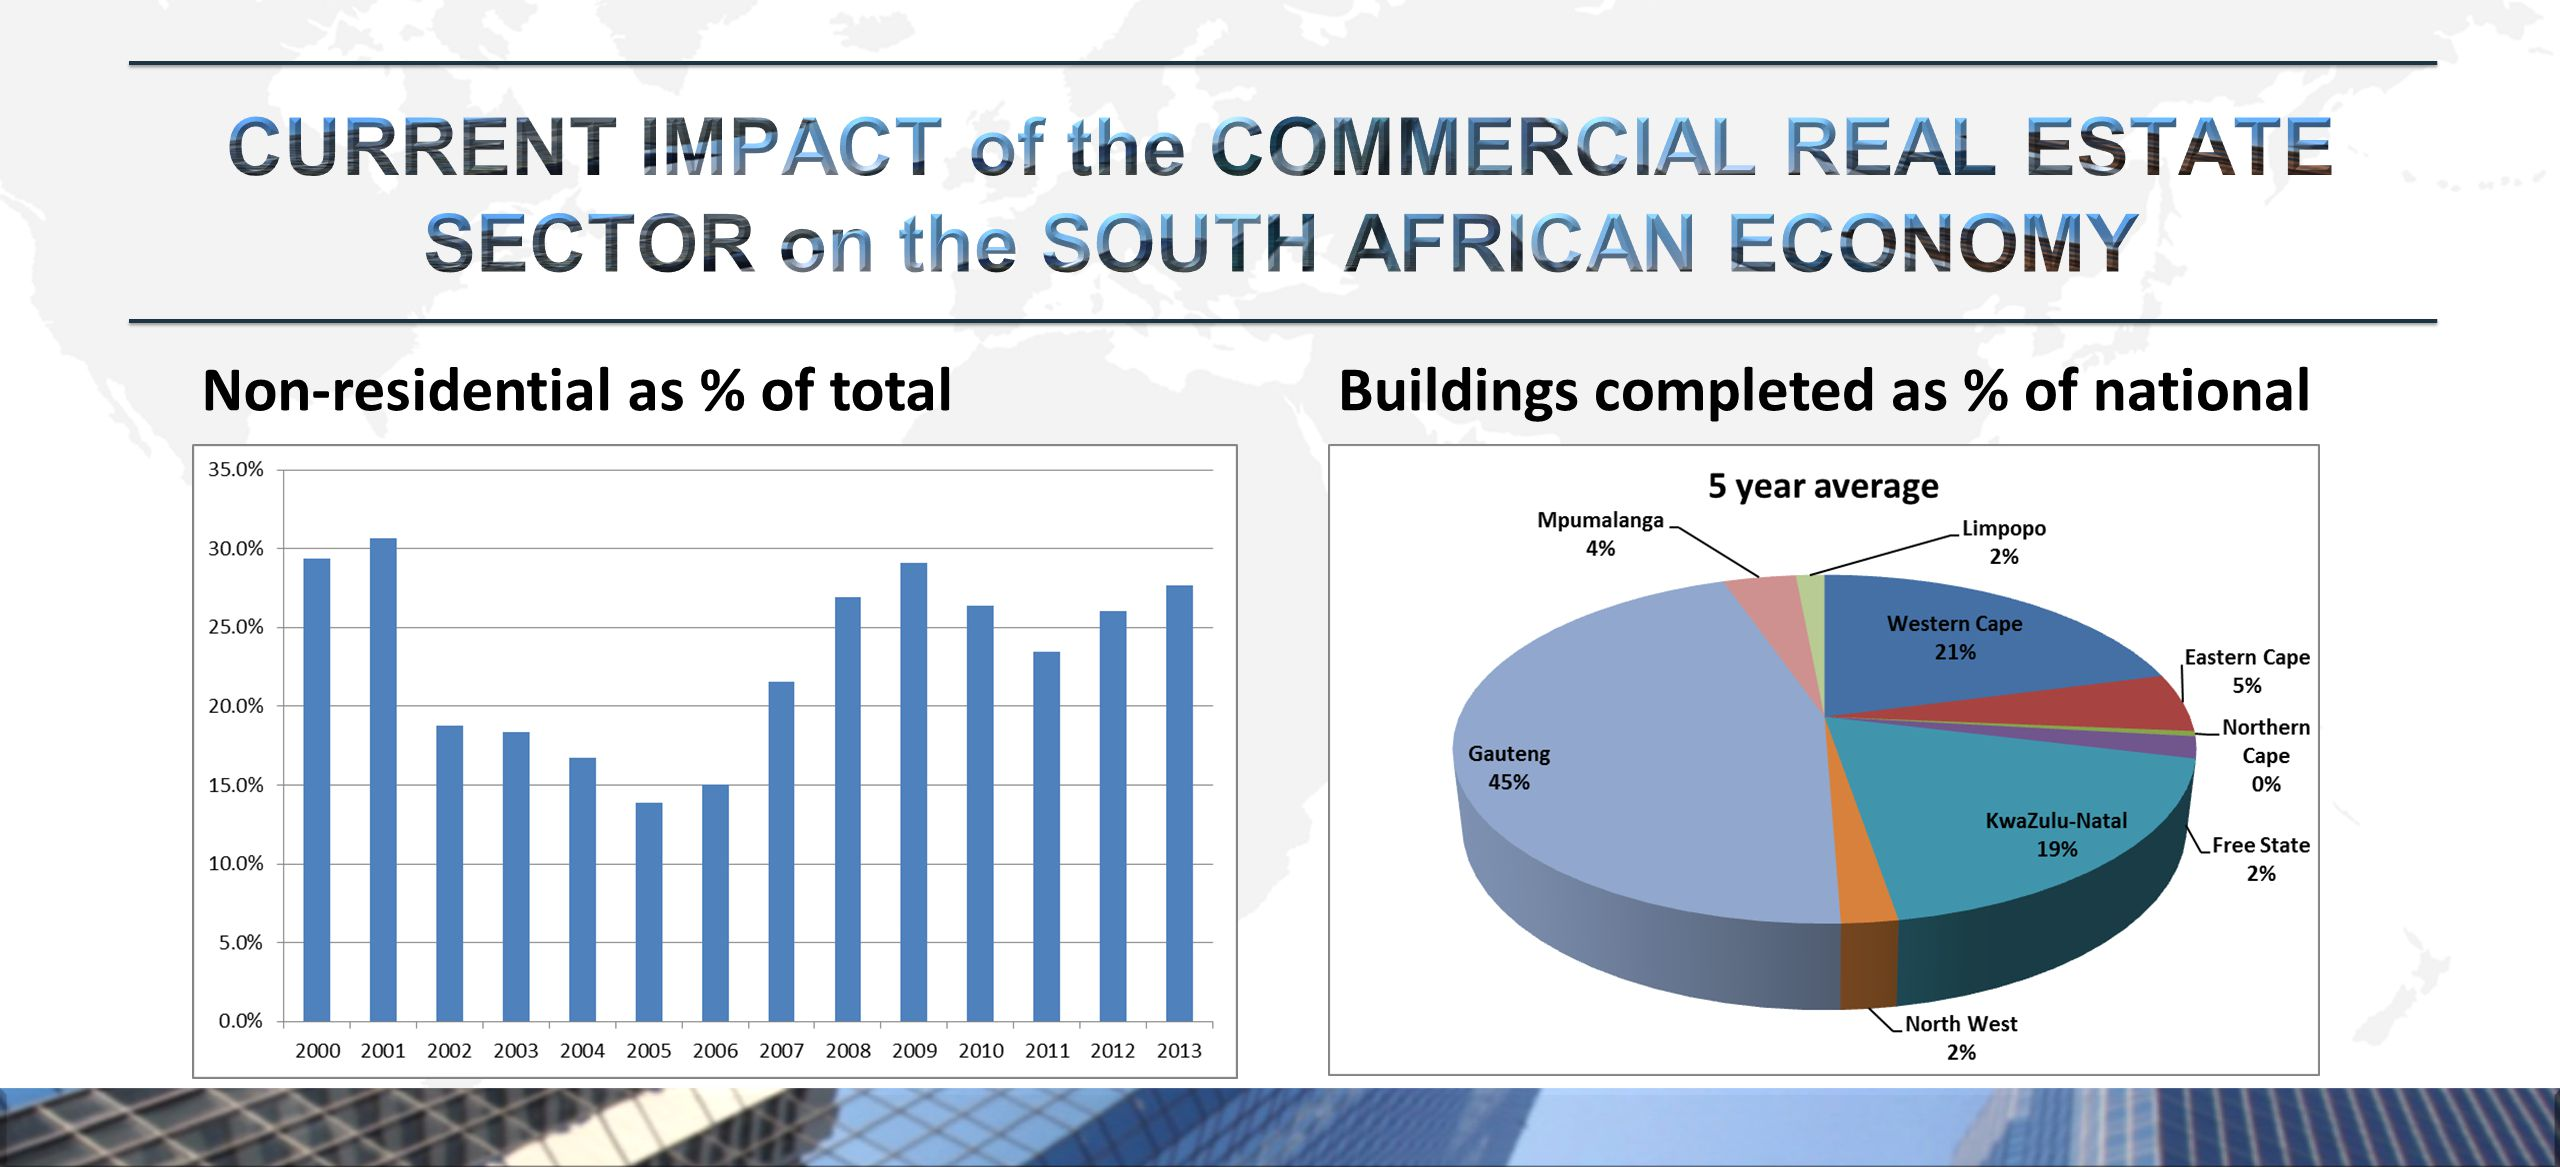 Non-residential as % of totalBuildings completed as % of national